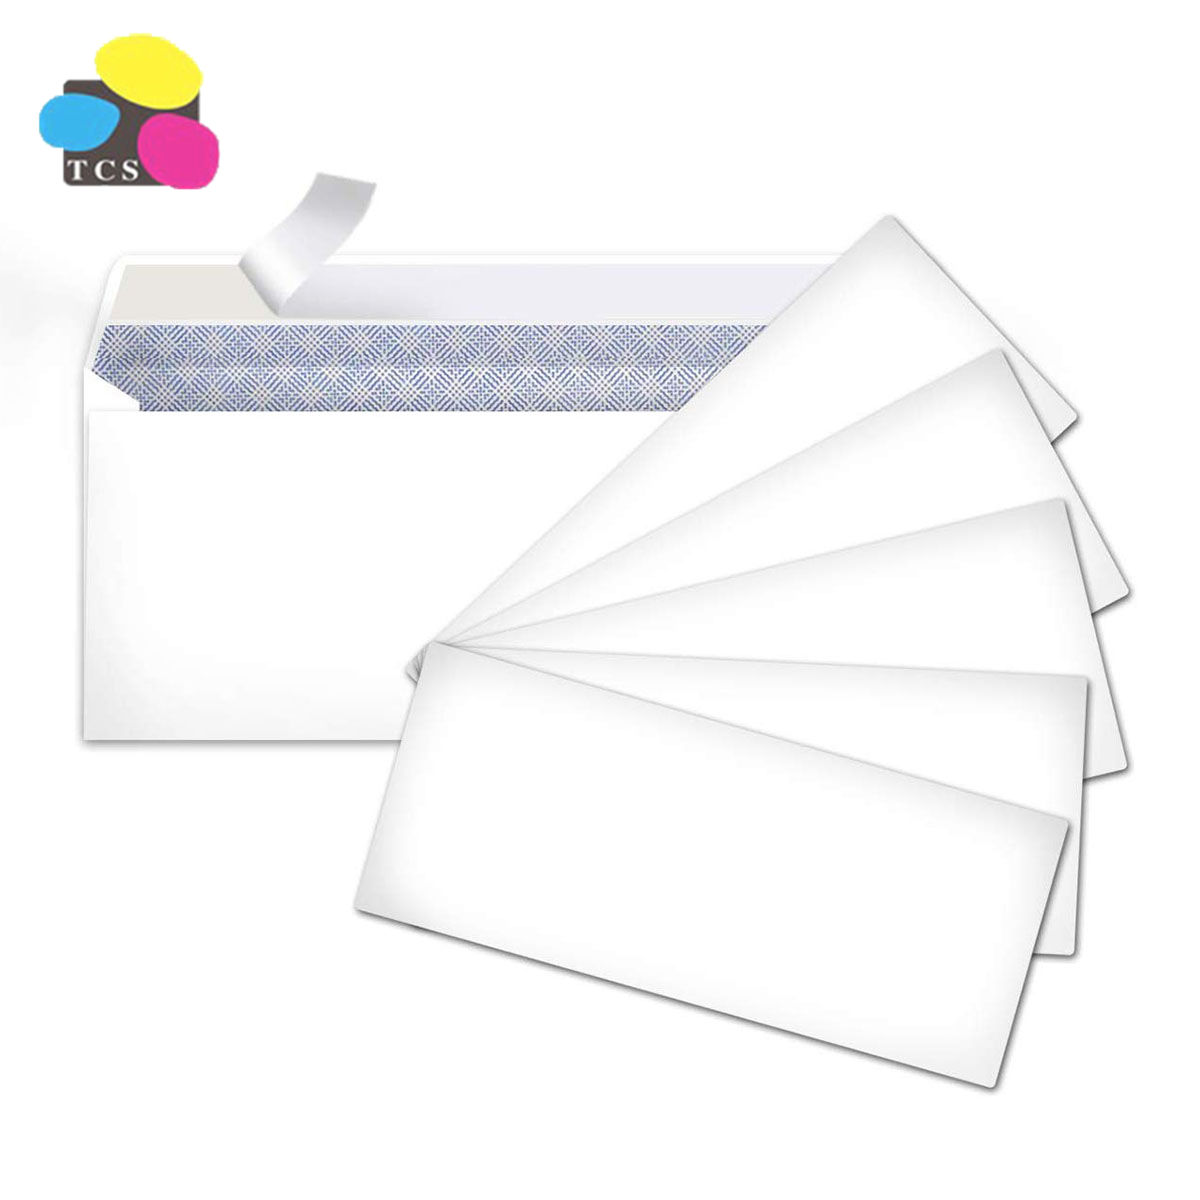 2019 Universal 500pcs/box Wallet self seal 80gsm FSC paper Envelope with window